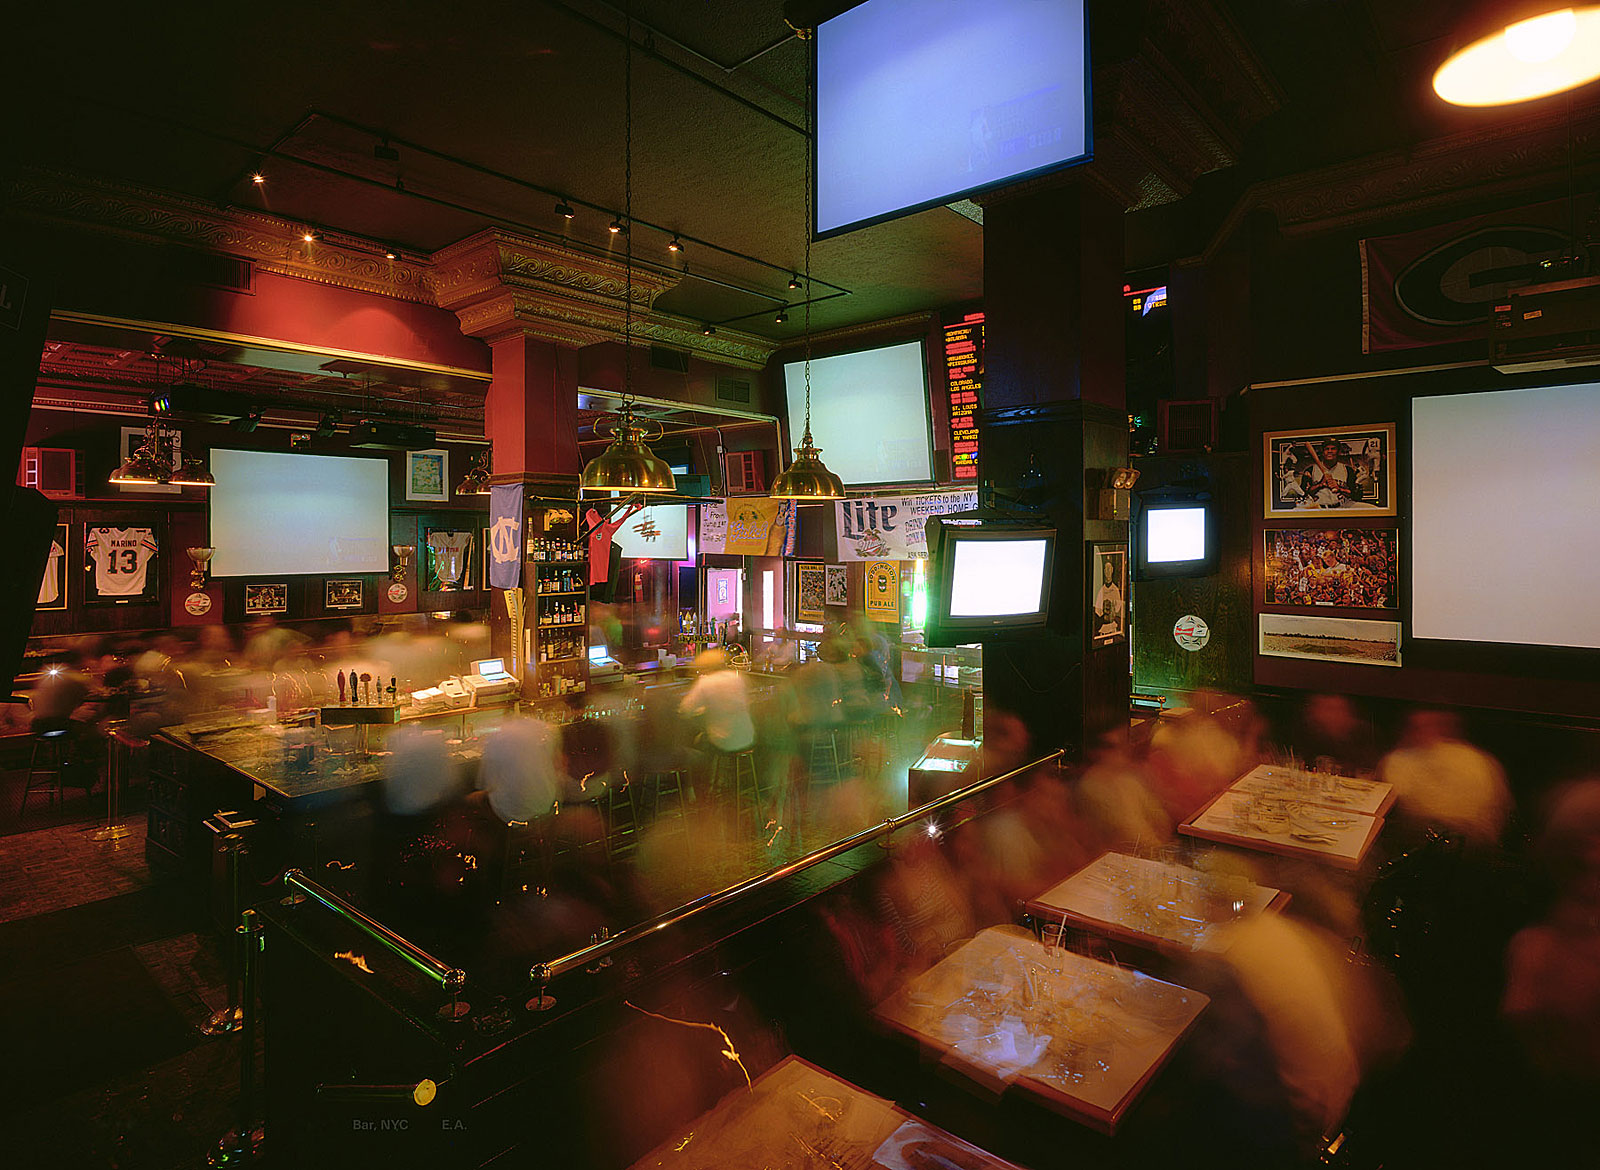 NBA finals, The Sporting Bar, New York (20.10 - 22.16 Uhr, 14.6.1998)